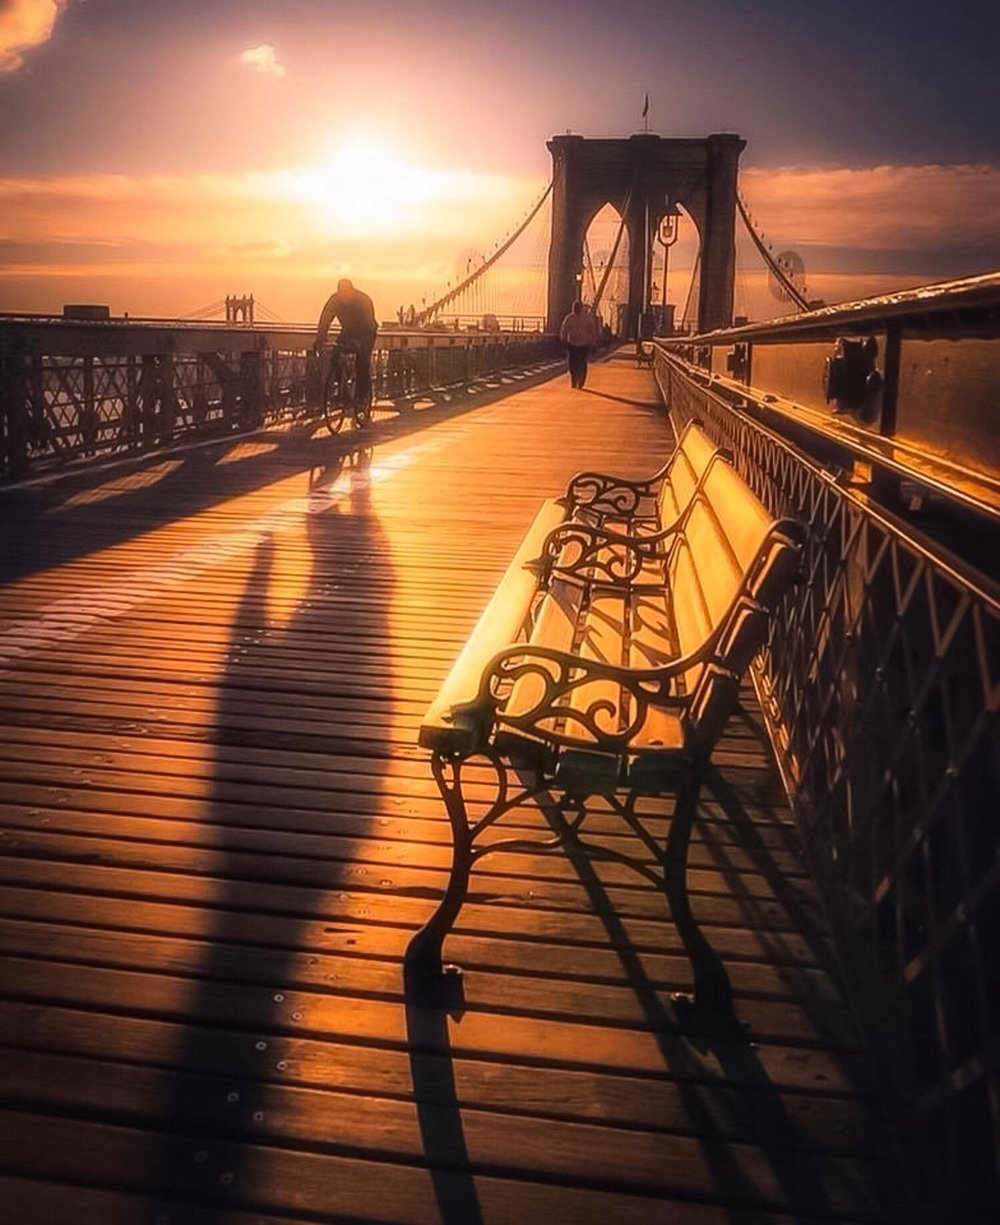 A new day and the old bridge. Sunrise at the Brooklyn Bridge by Lucas Compan